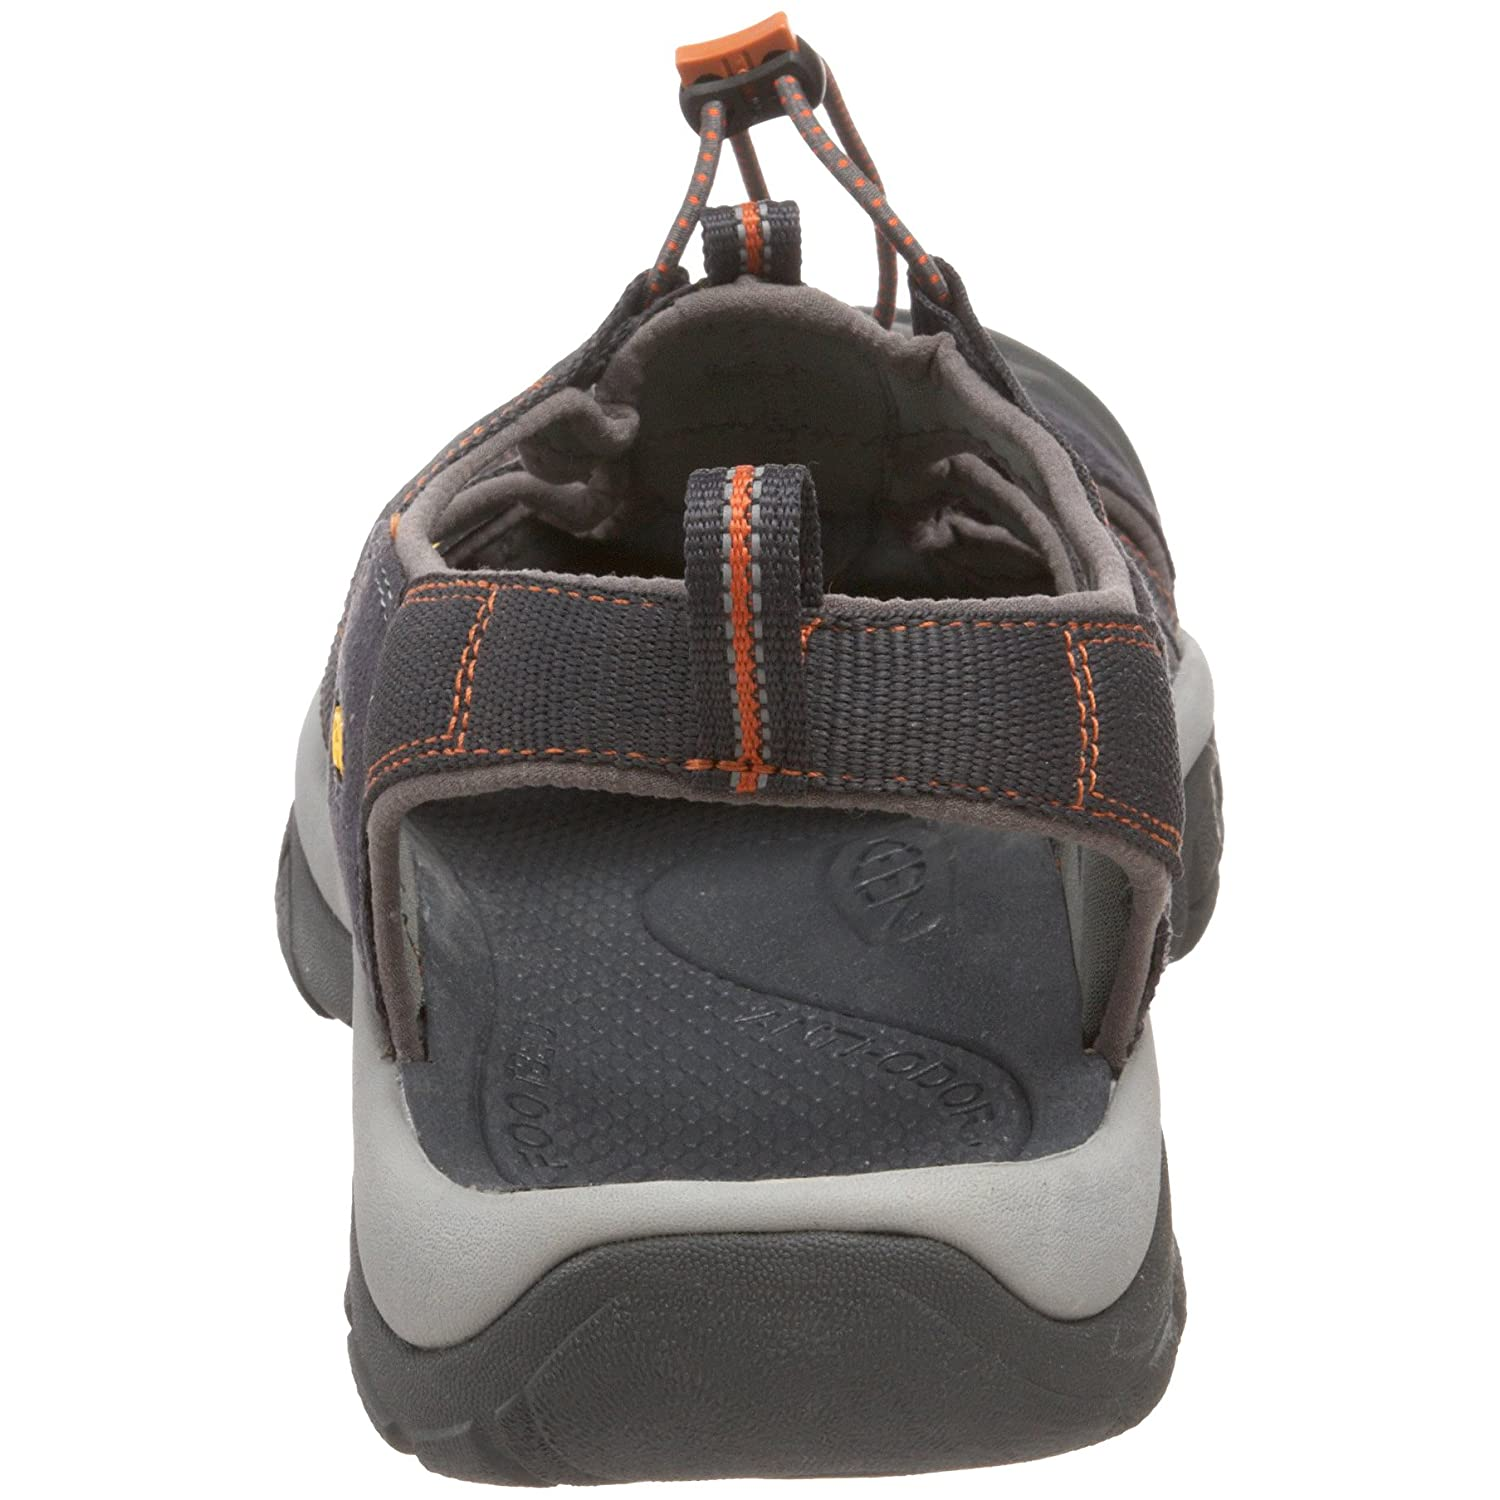 KEEN Men's Newport H2 Sandal B0035FC8M0 8.5 D(M) US|India Ink/Rust